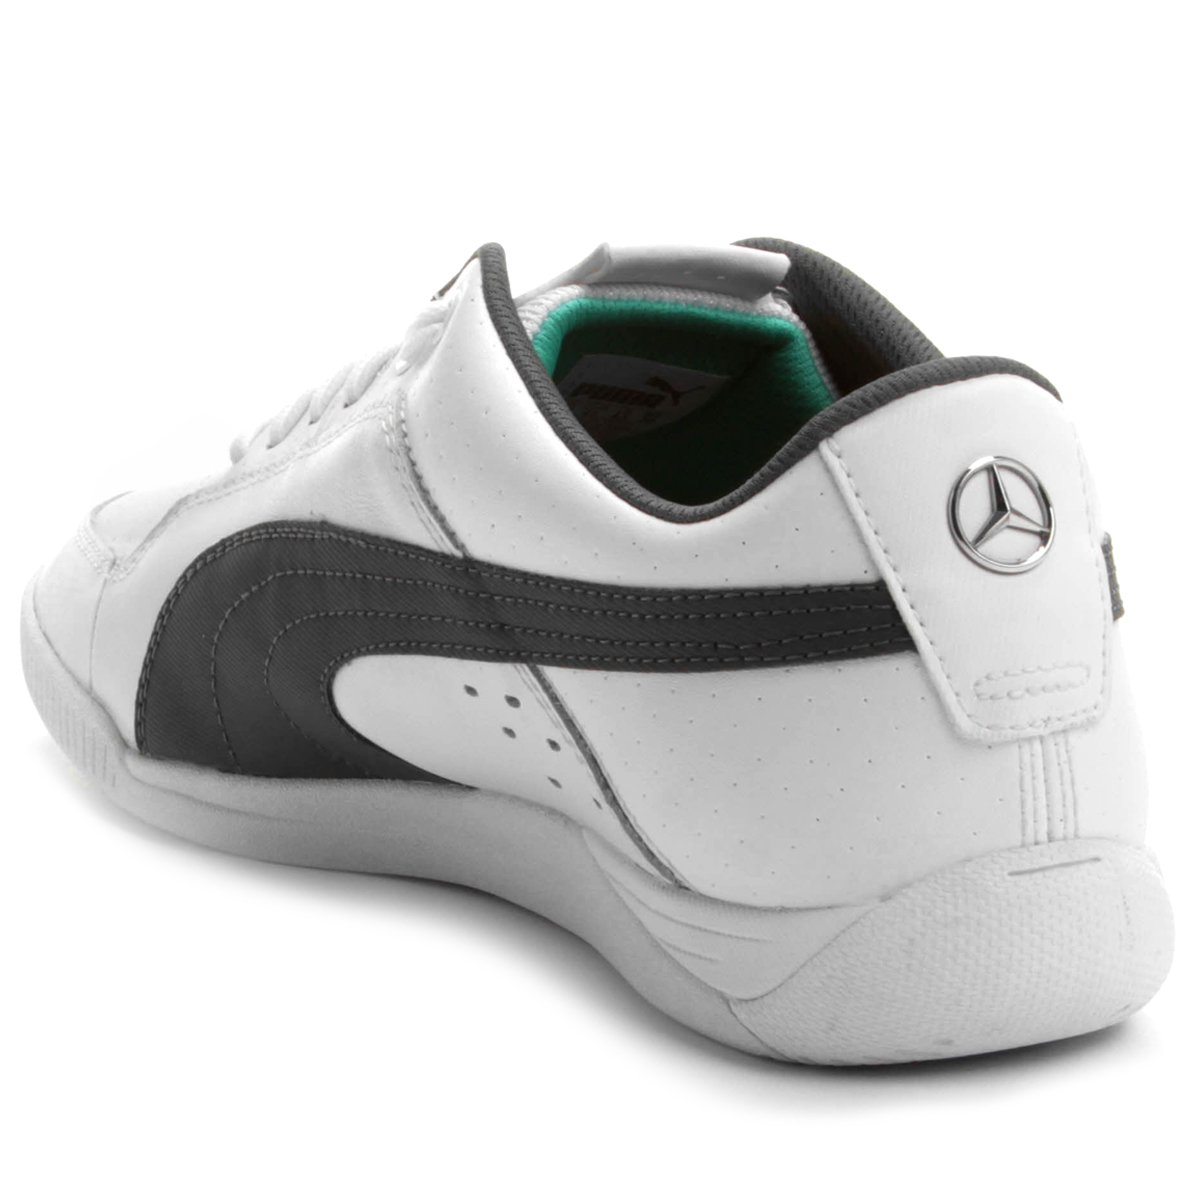 7a9a2beff6 ... amg gp future cat s2 preto. Carregando zoom  hot product b3106 33c7a  ... Tênis Puma Mercedes Silver Lo Leather .. ...